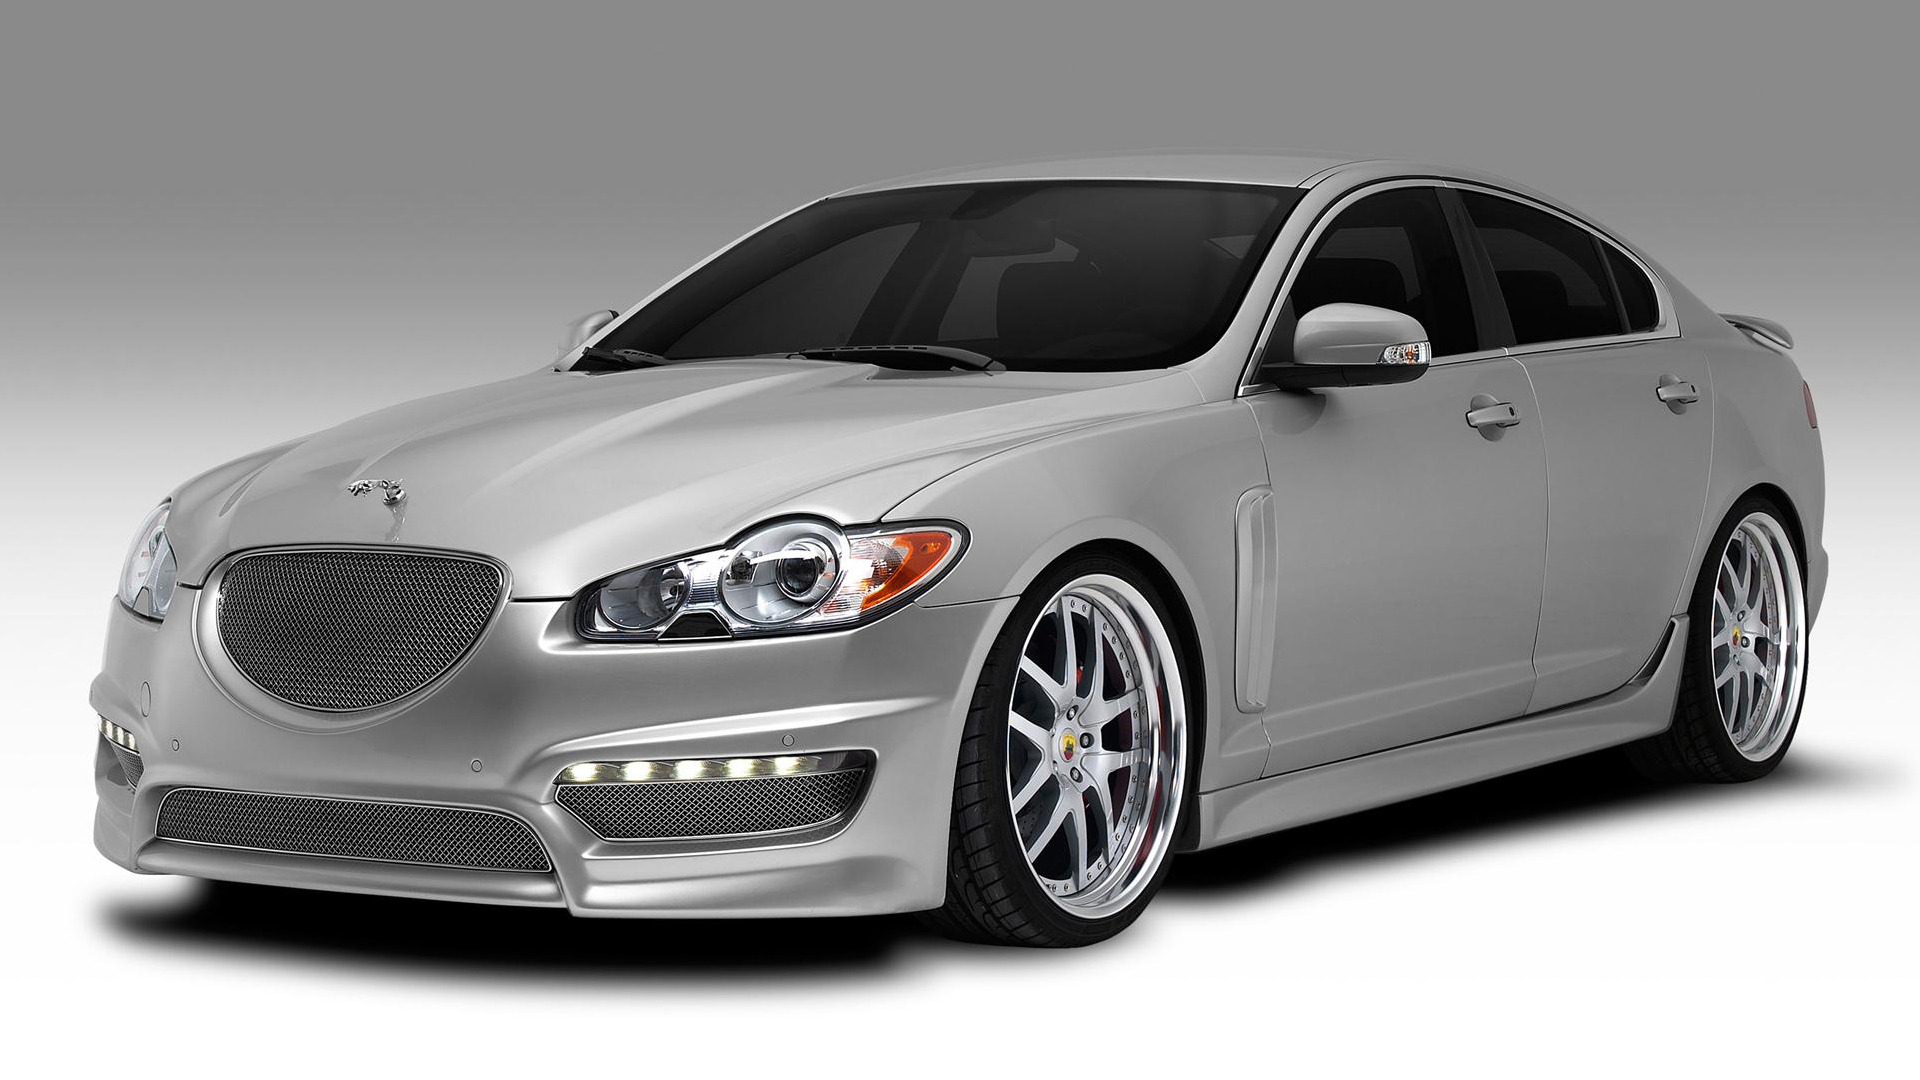 Car Wallpapers Jaguar Xf Front Car Humor